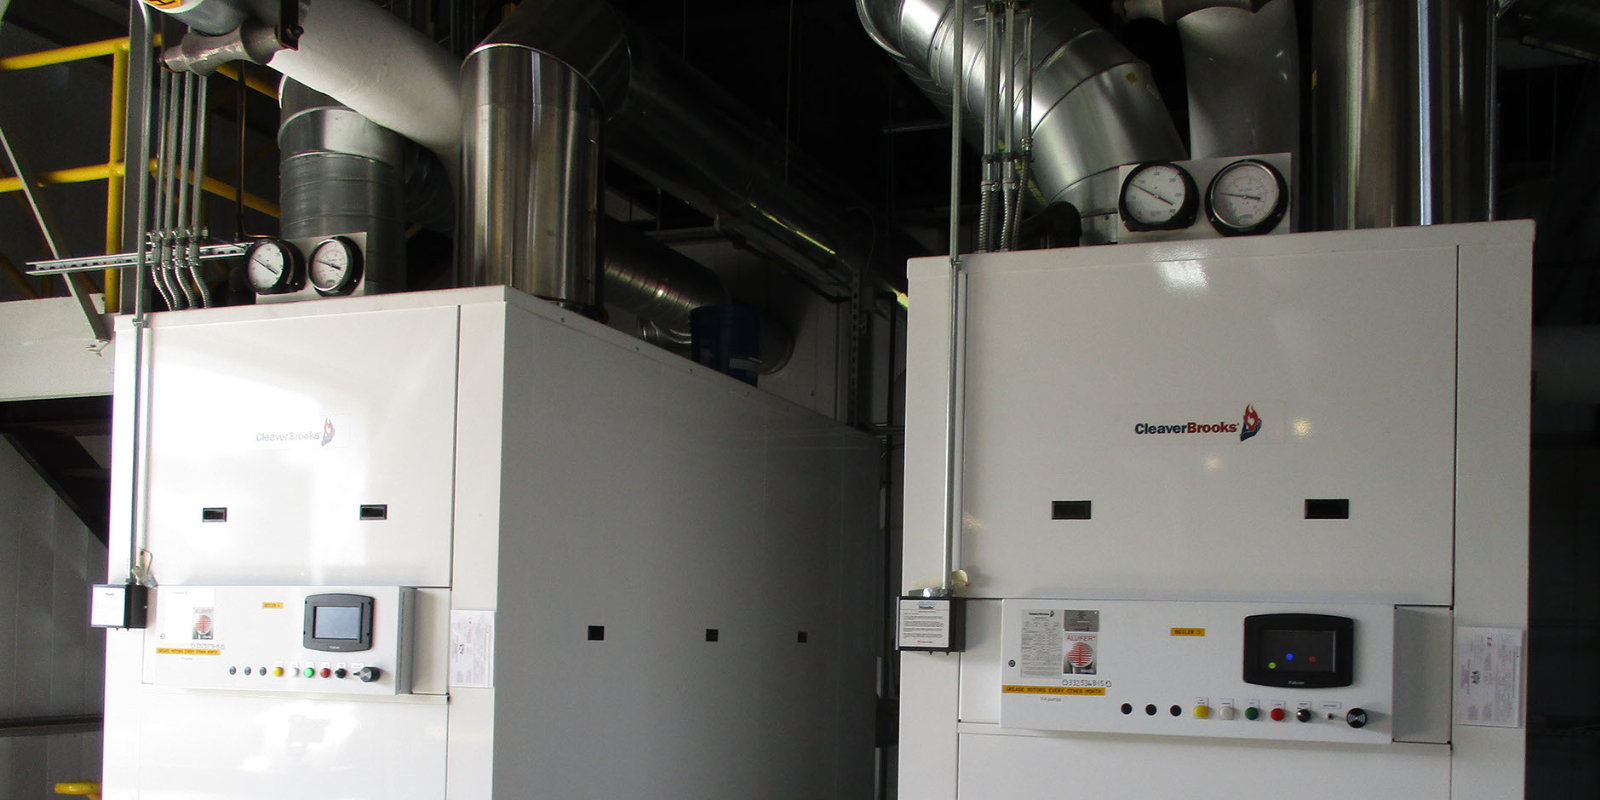 Cleaver-Brooks ClearFire Boilers